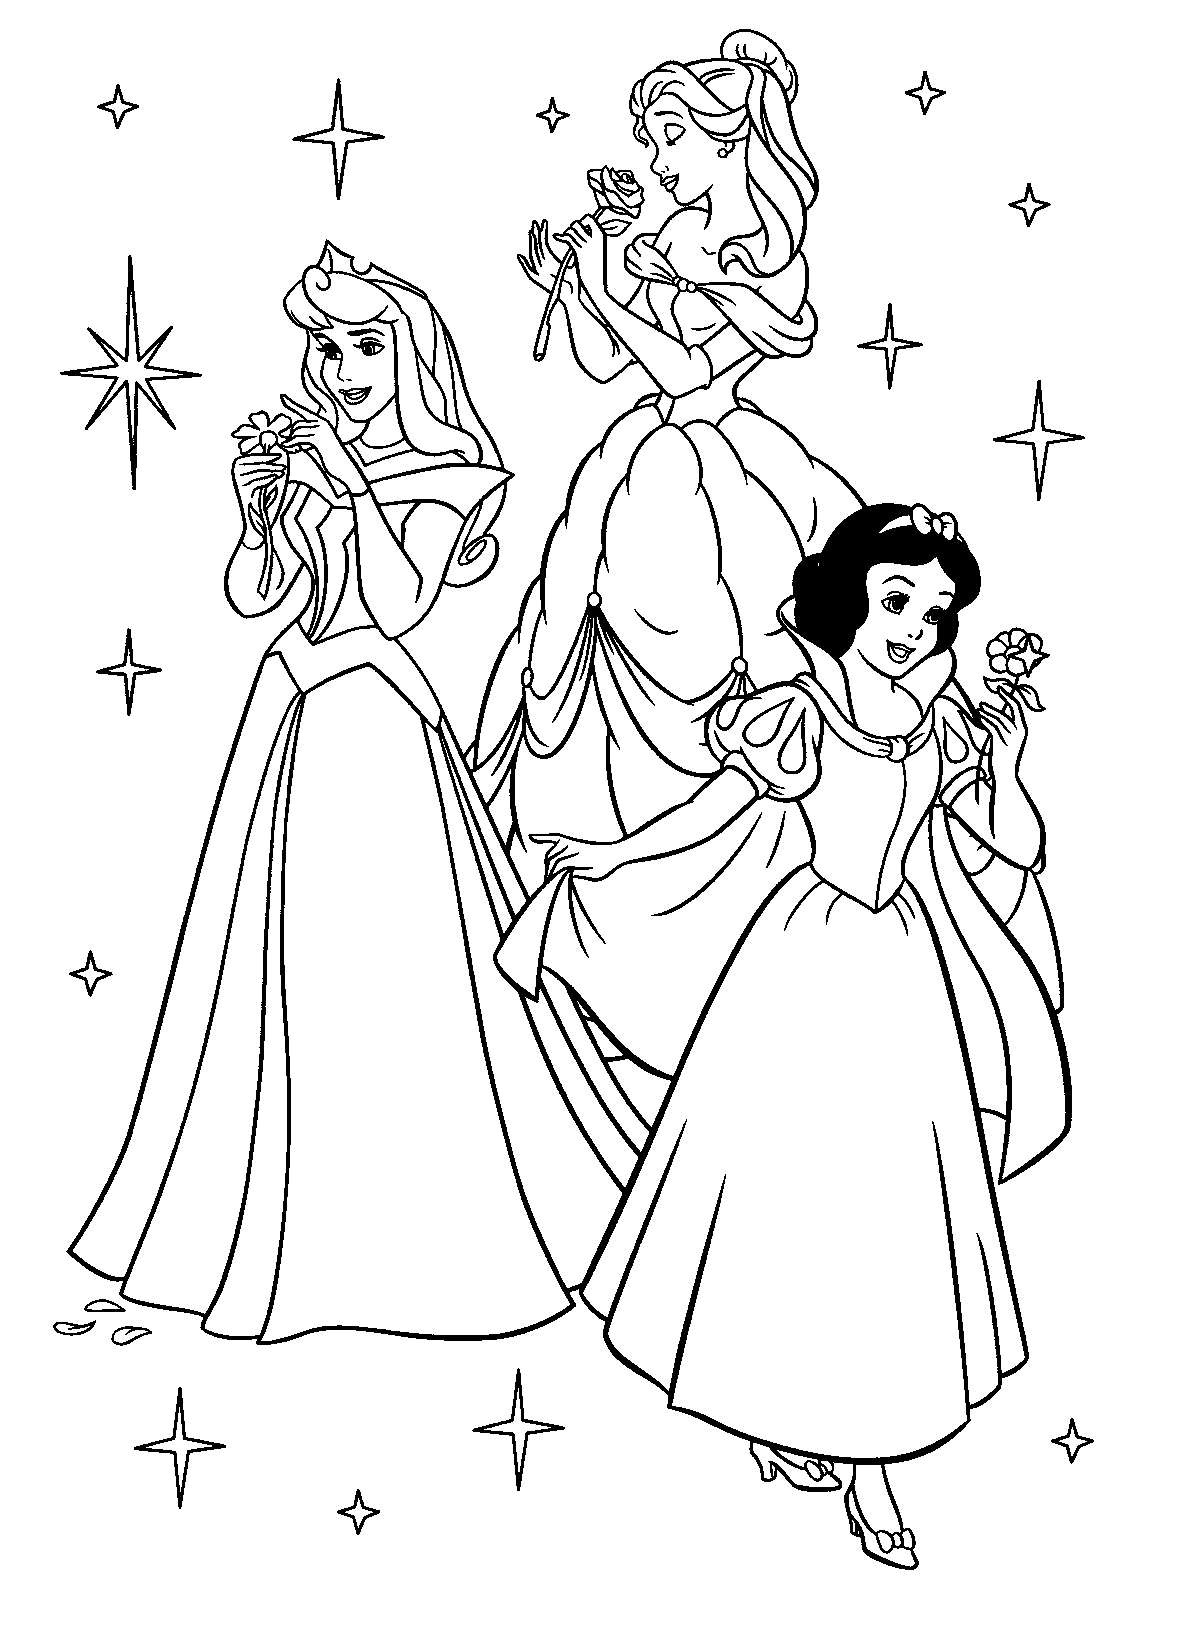 Free coloring pages disney princesses - Disney Princess Coloring Pages